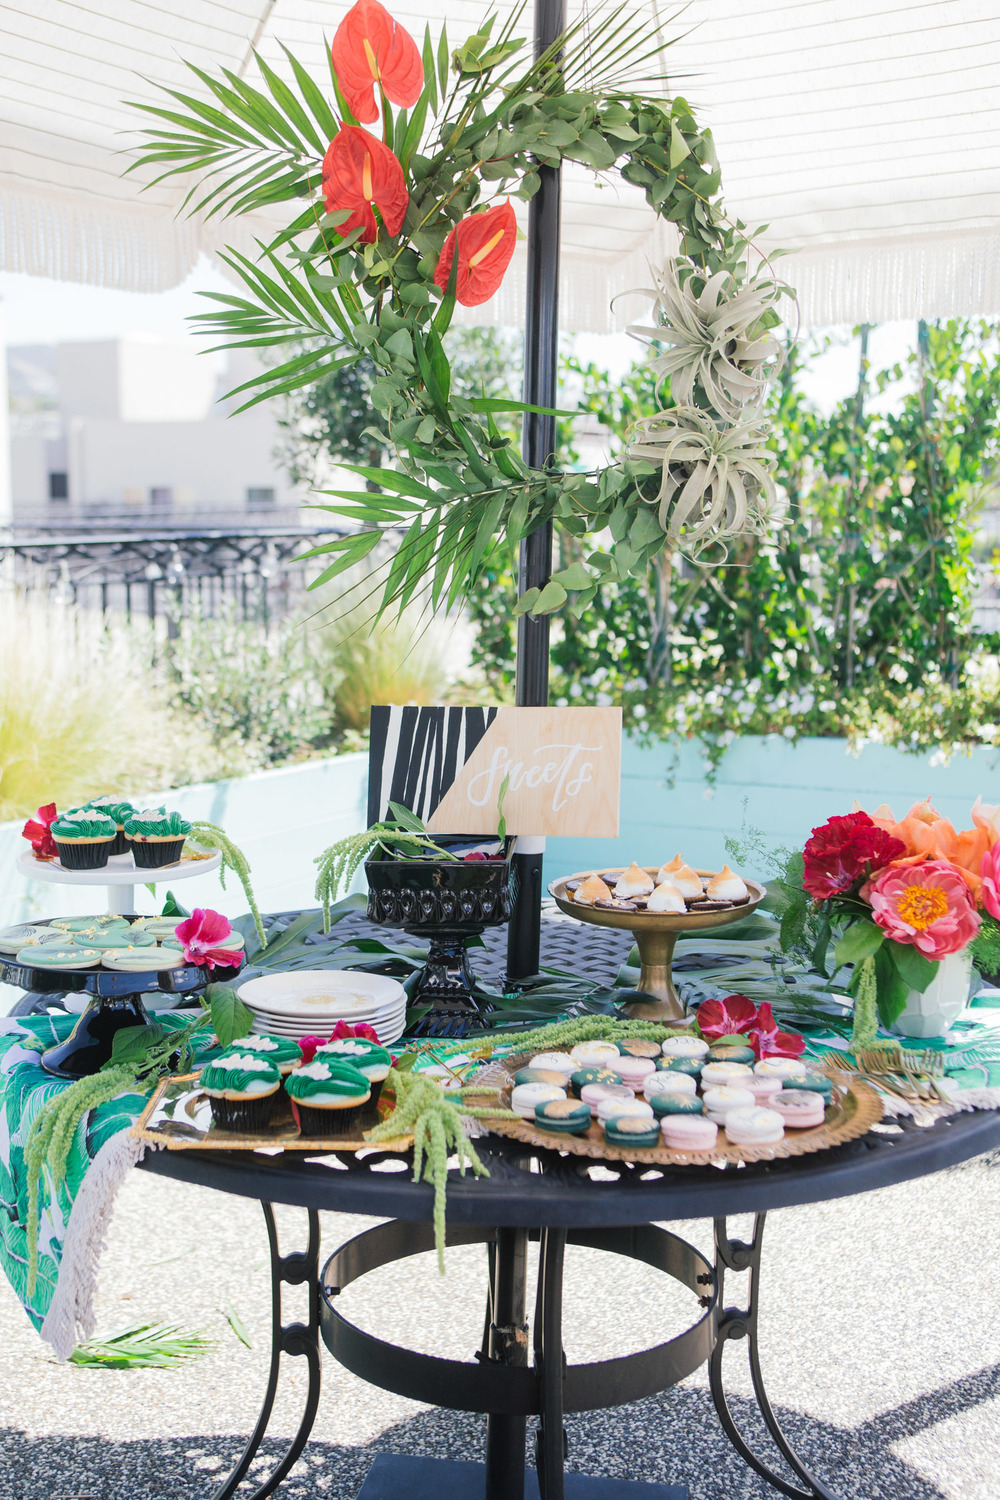 Aloha dessert table